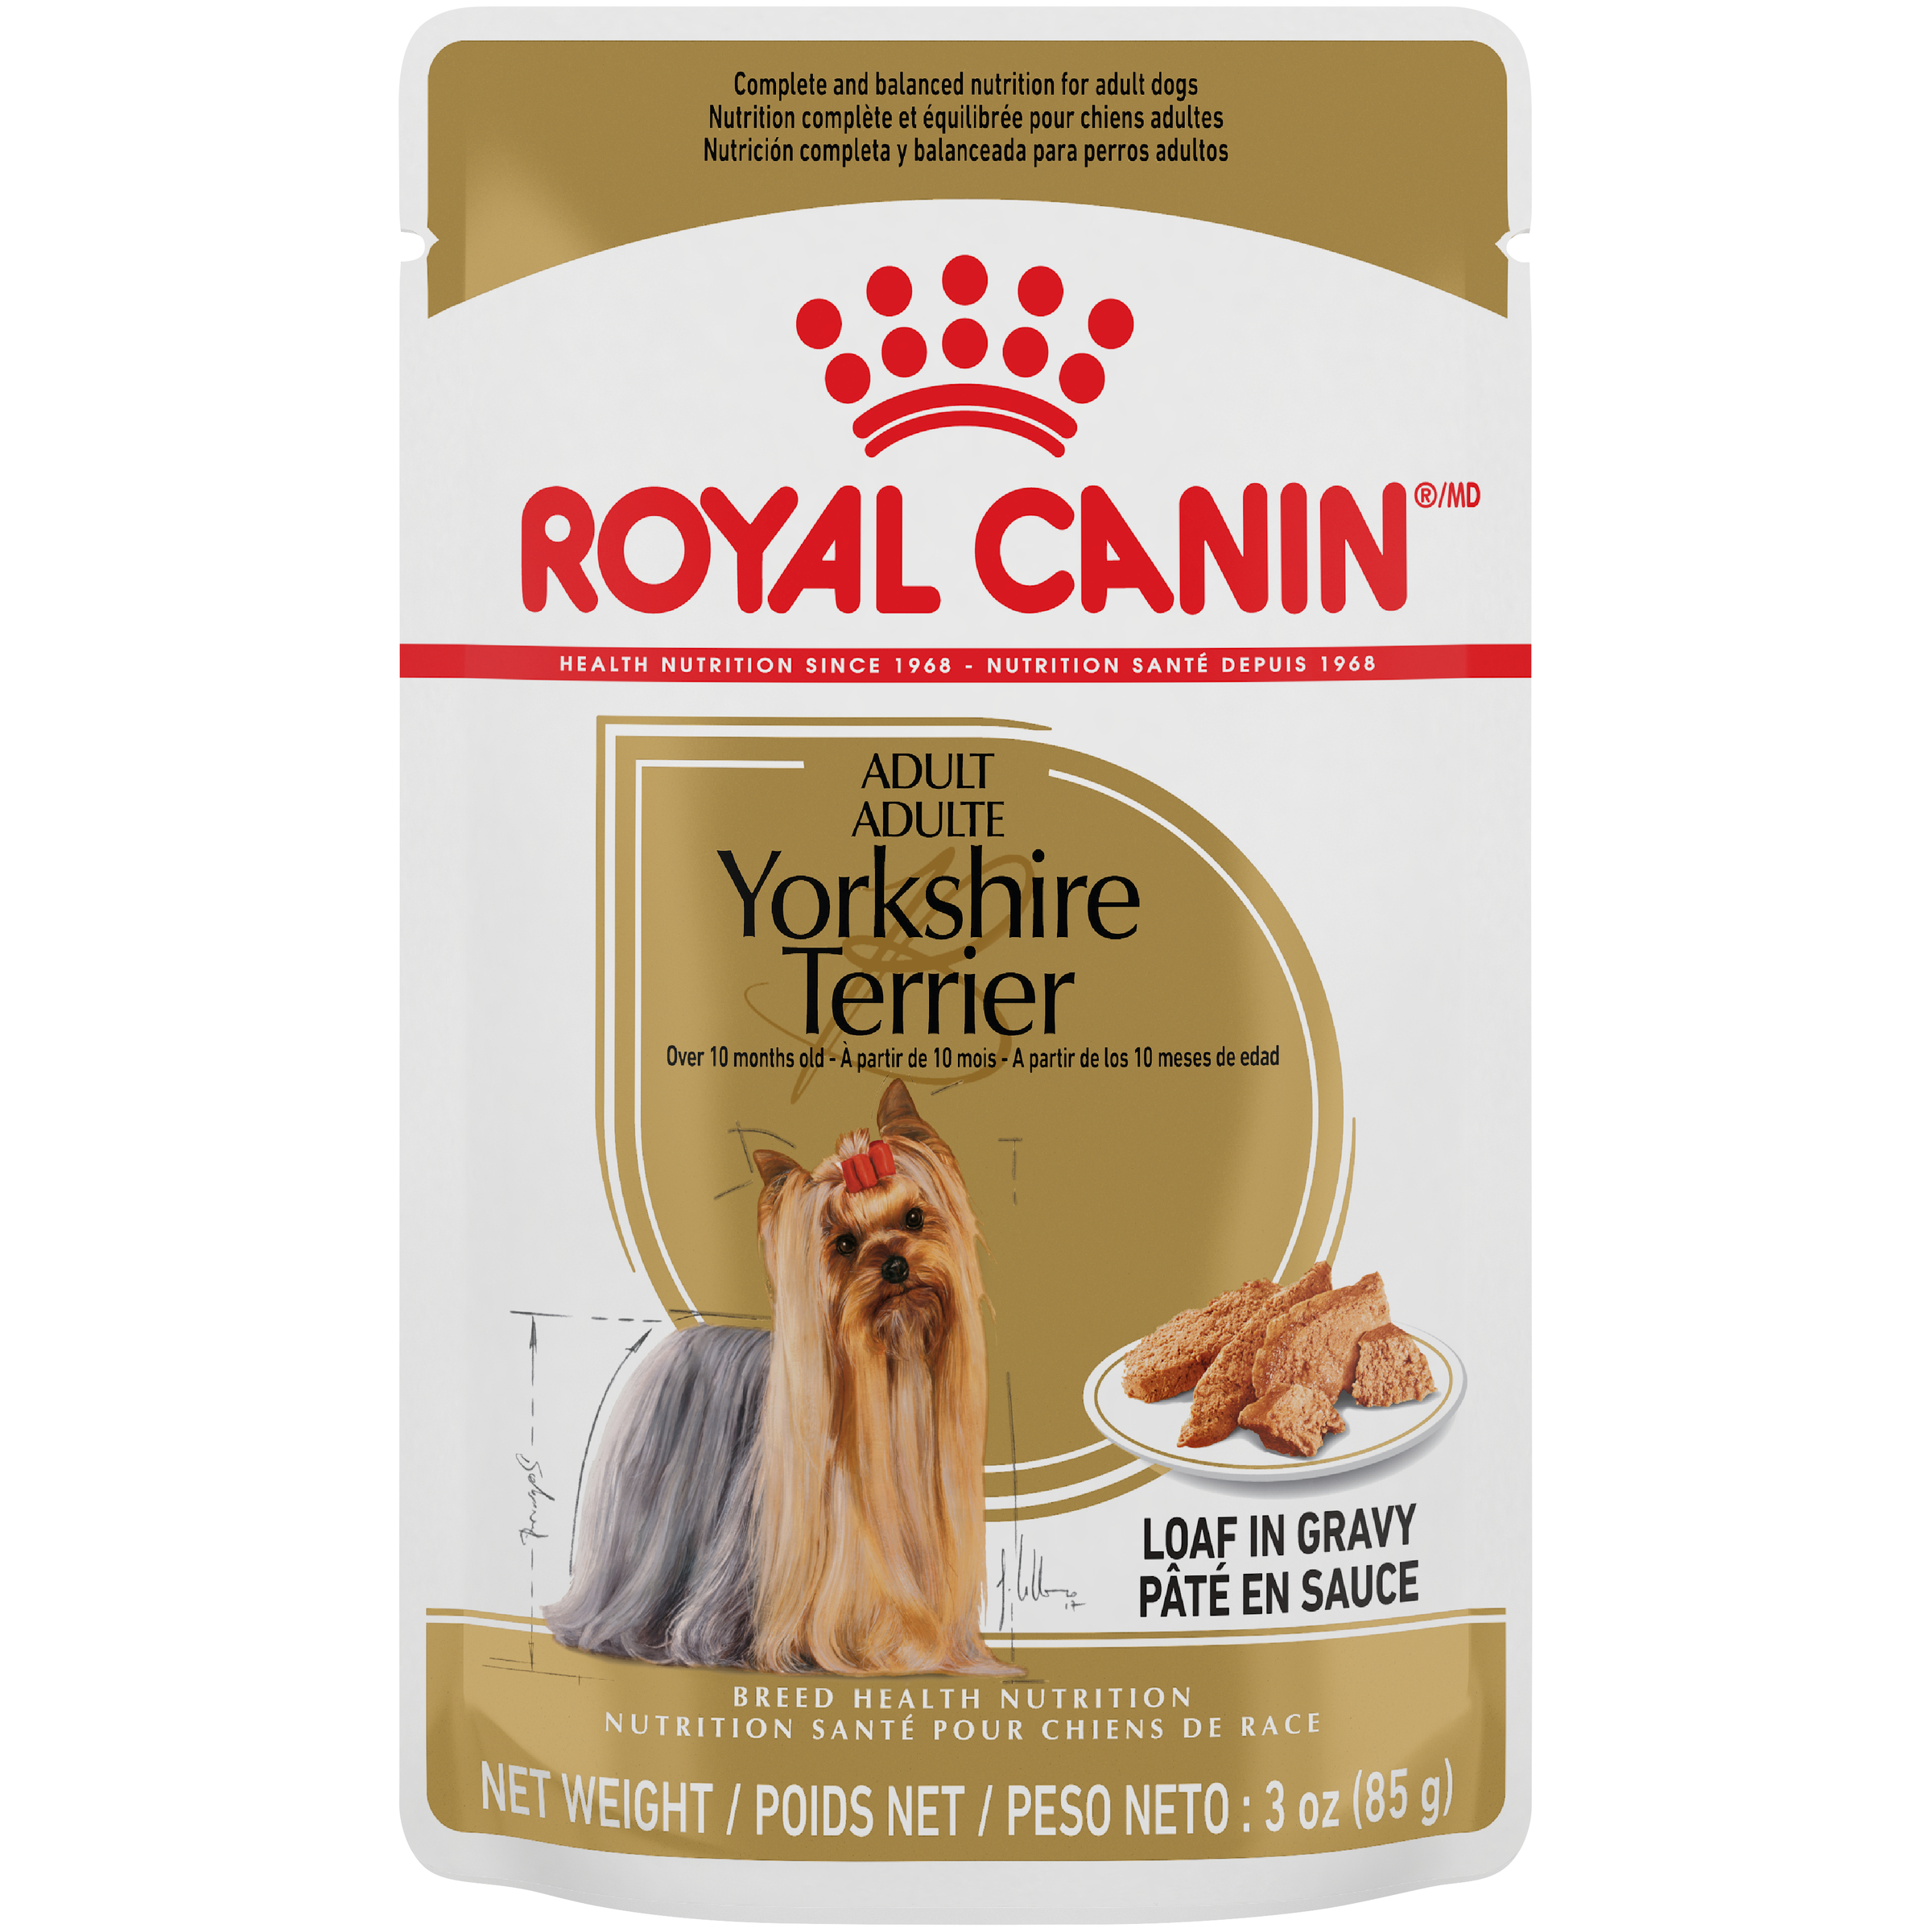 Royal Canin Breed Health Nutrition Yorkshire Terrier Pouch Dog Food